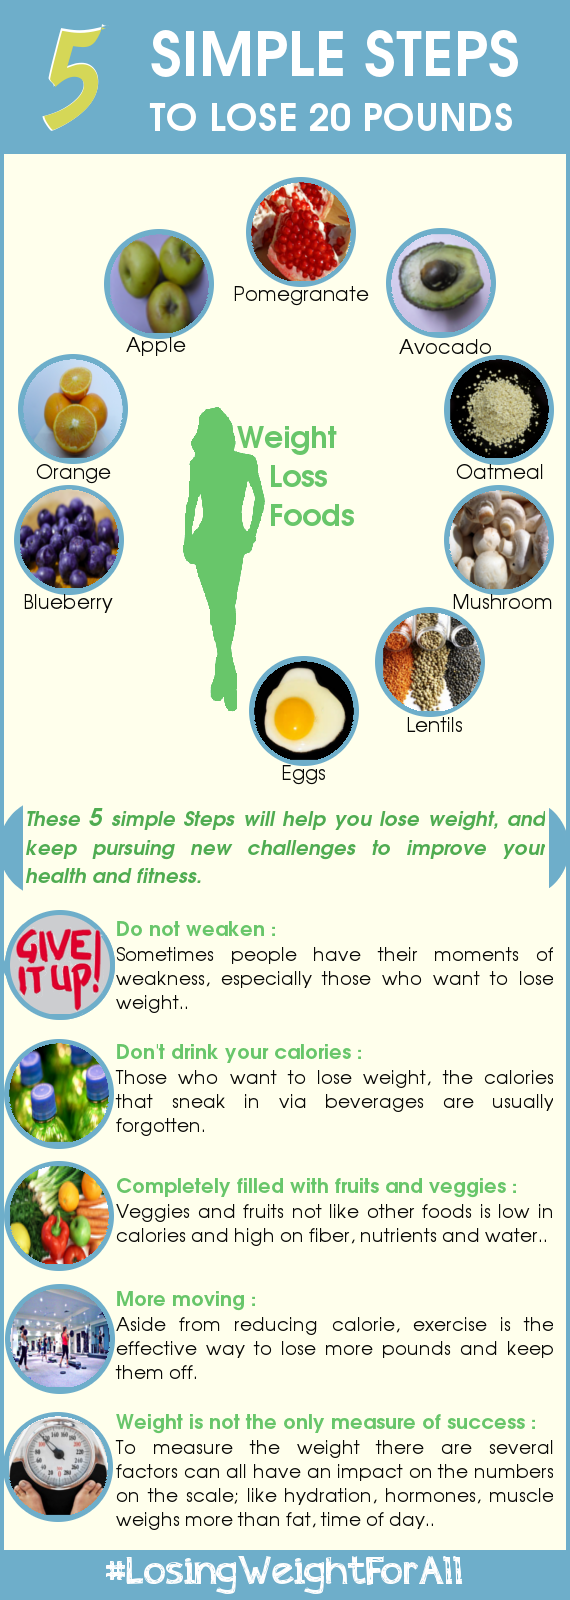 5 Simple Steps to Lose 20 Pounds infographic Lose 20